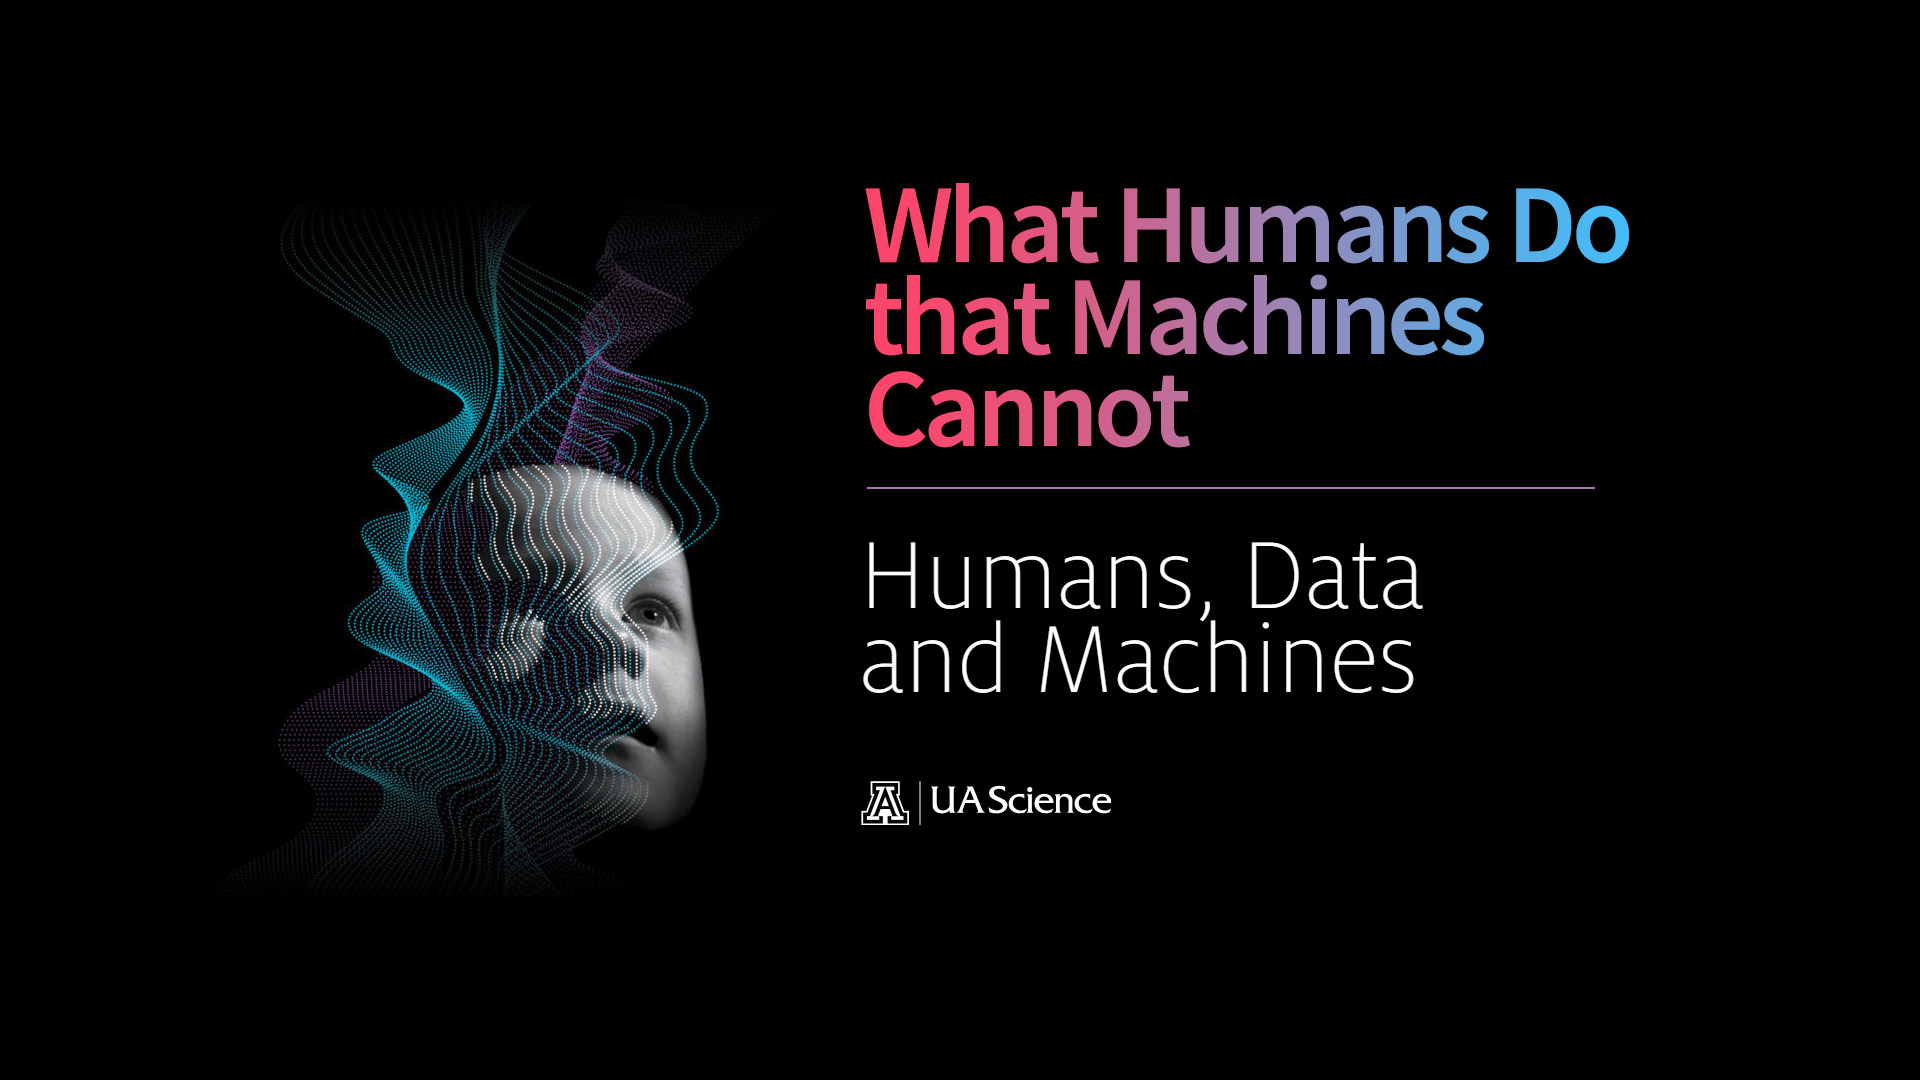 UA Science Lecture Series 4: What Humans Do that Machines Cannot